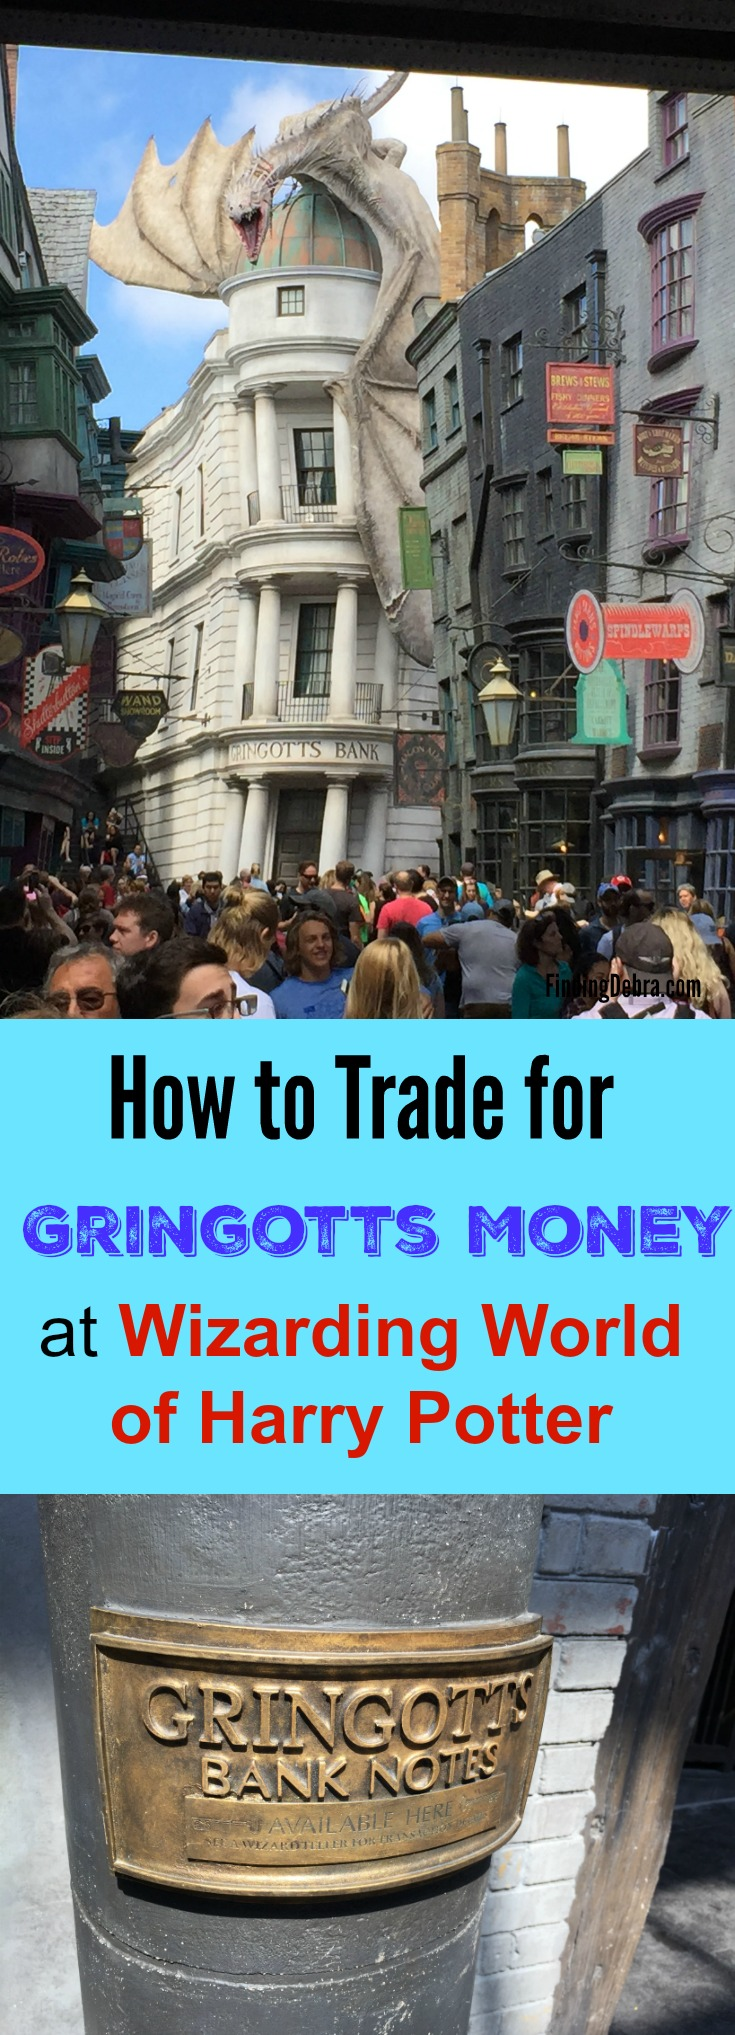 How to Trade money for Gringotts Money at Wizarding World of Harry Potter - Universal Studios Orlando